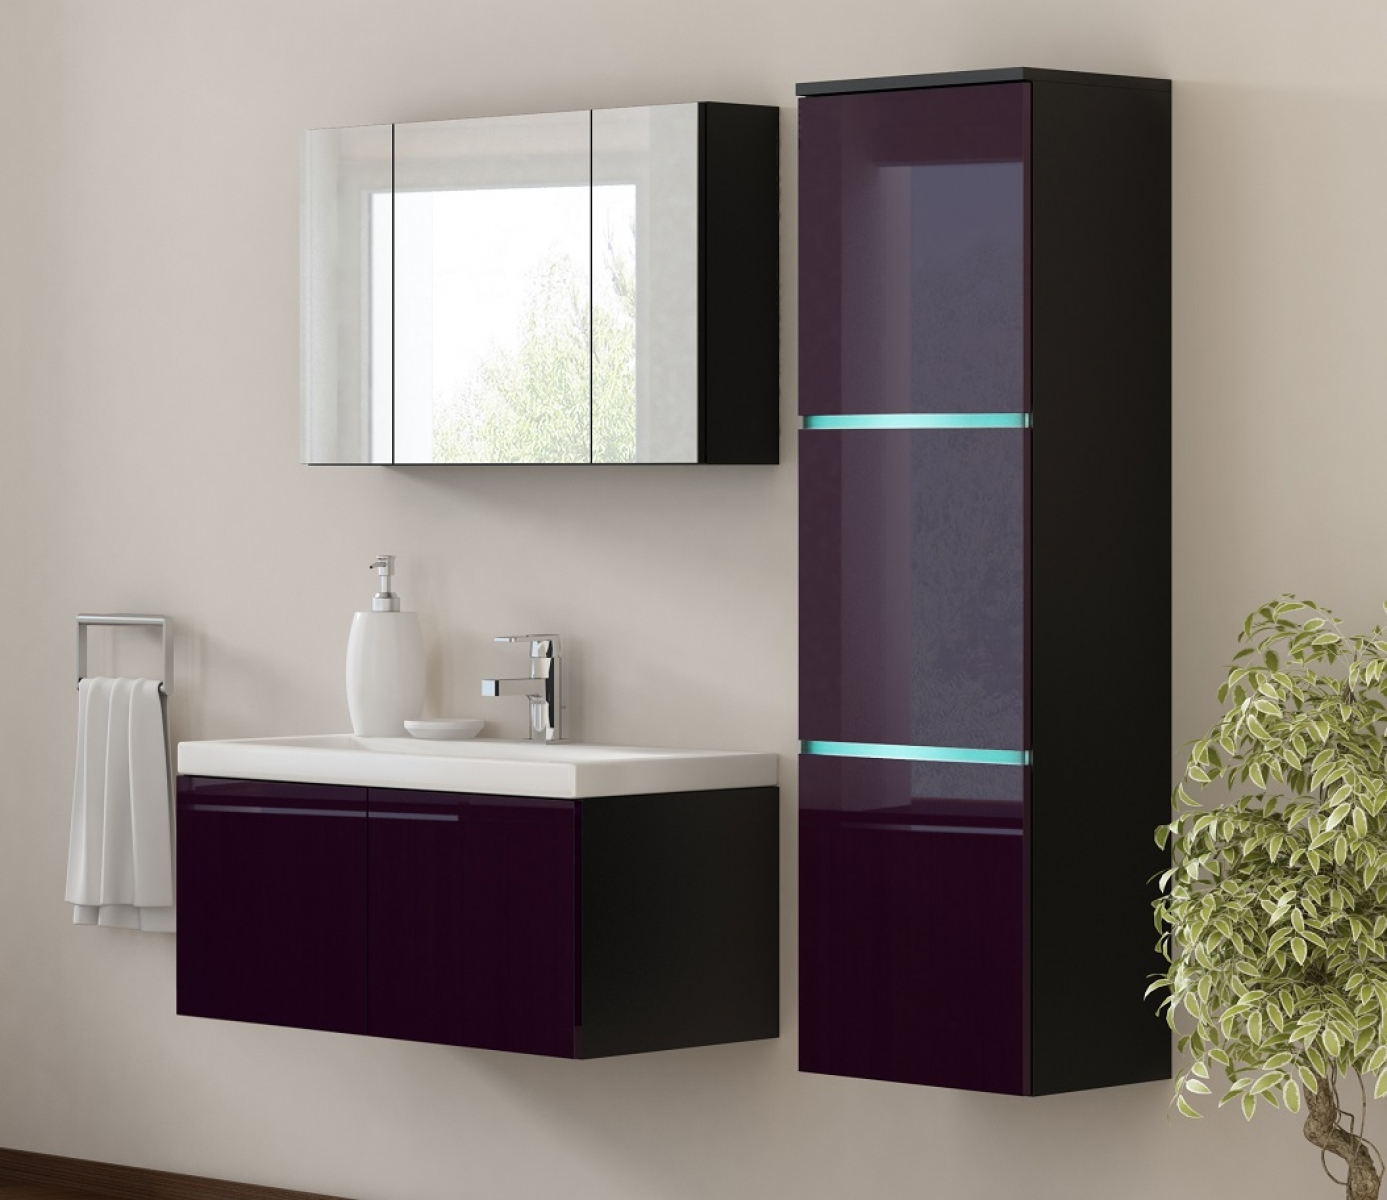 kaufexpert badm bel set werner xxl 1 aubergine hochglanz. Black Bedroom Furniture Sets. Home Design Ideas